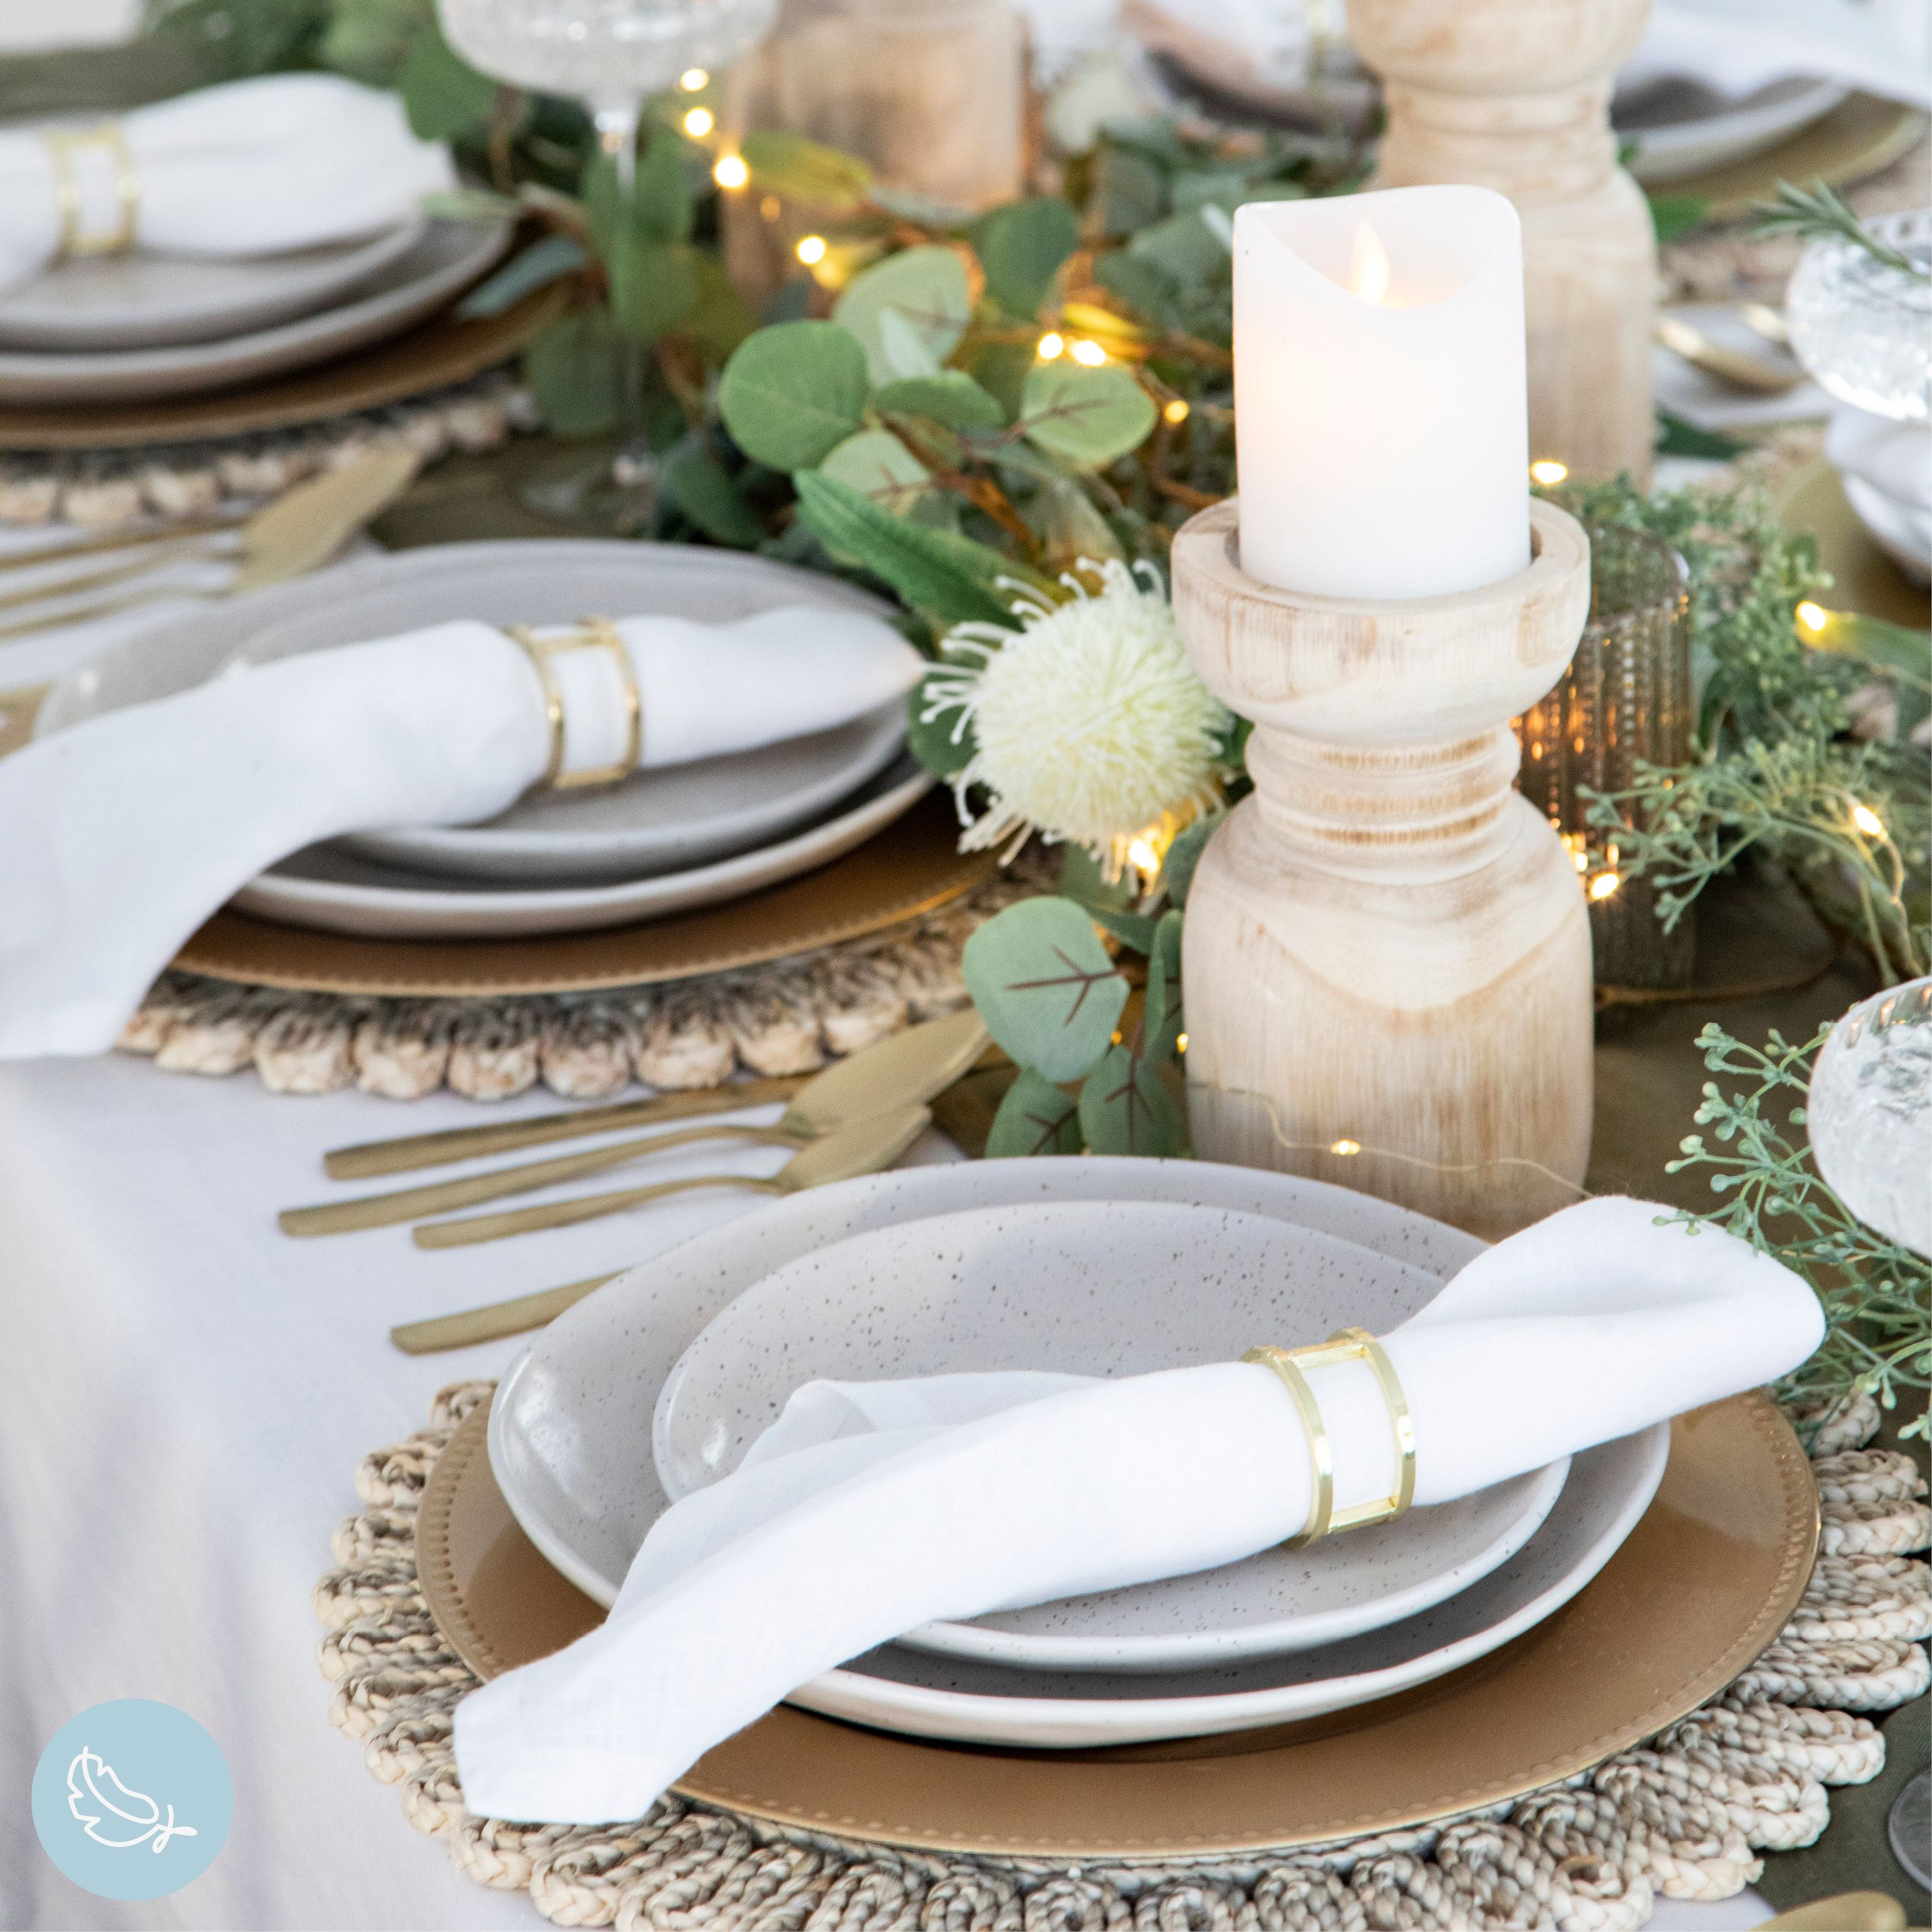 Create your dream Christmas table with green garlands, fairy lights, candle holders and table linen! #christmas #xmas #gifts #christmasdecor #xmasdecor #christmasdinner #christmastable #christmashome #christmasstyle #holidaydecor #holidaygifts #holiday #christmasshoppingonline #holidayparty #christmasdecorations